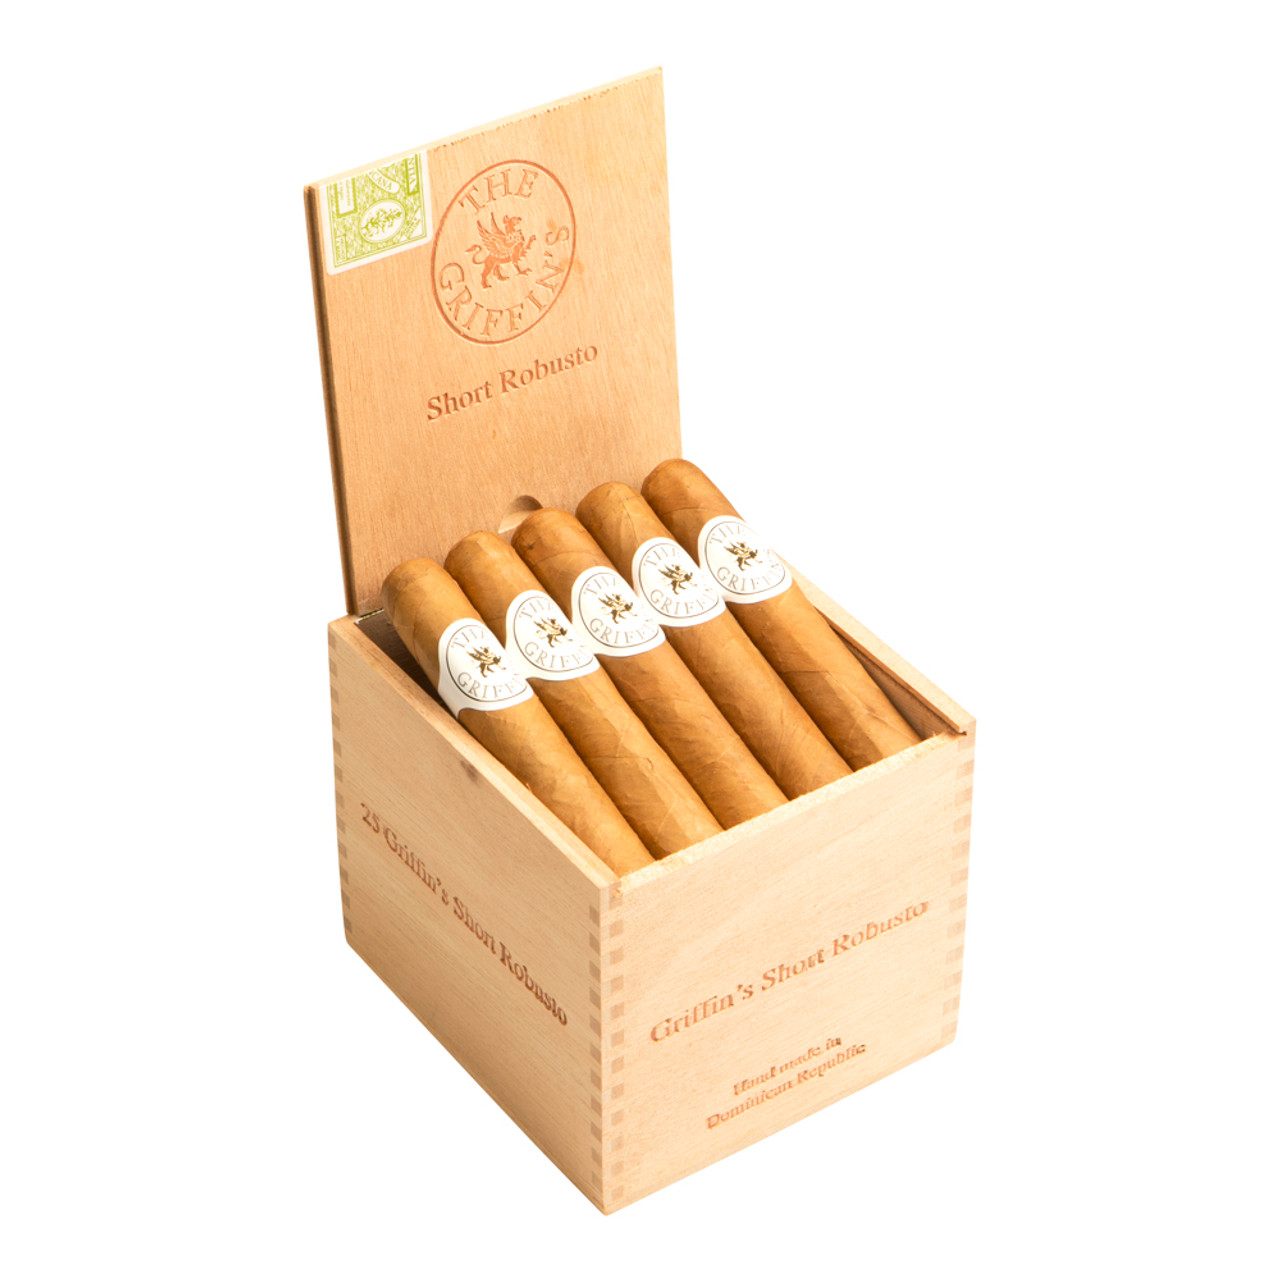 The Griffin's Short Robusto Cigars - 4.25 x 48 (Box of 25)